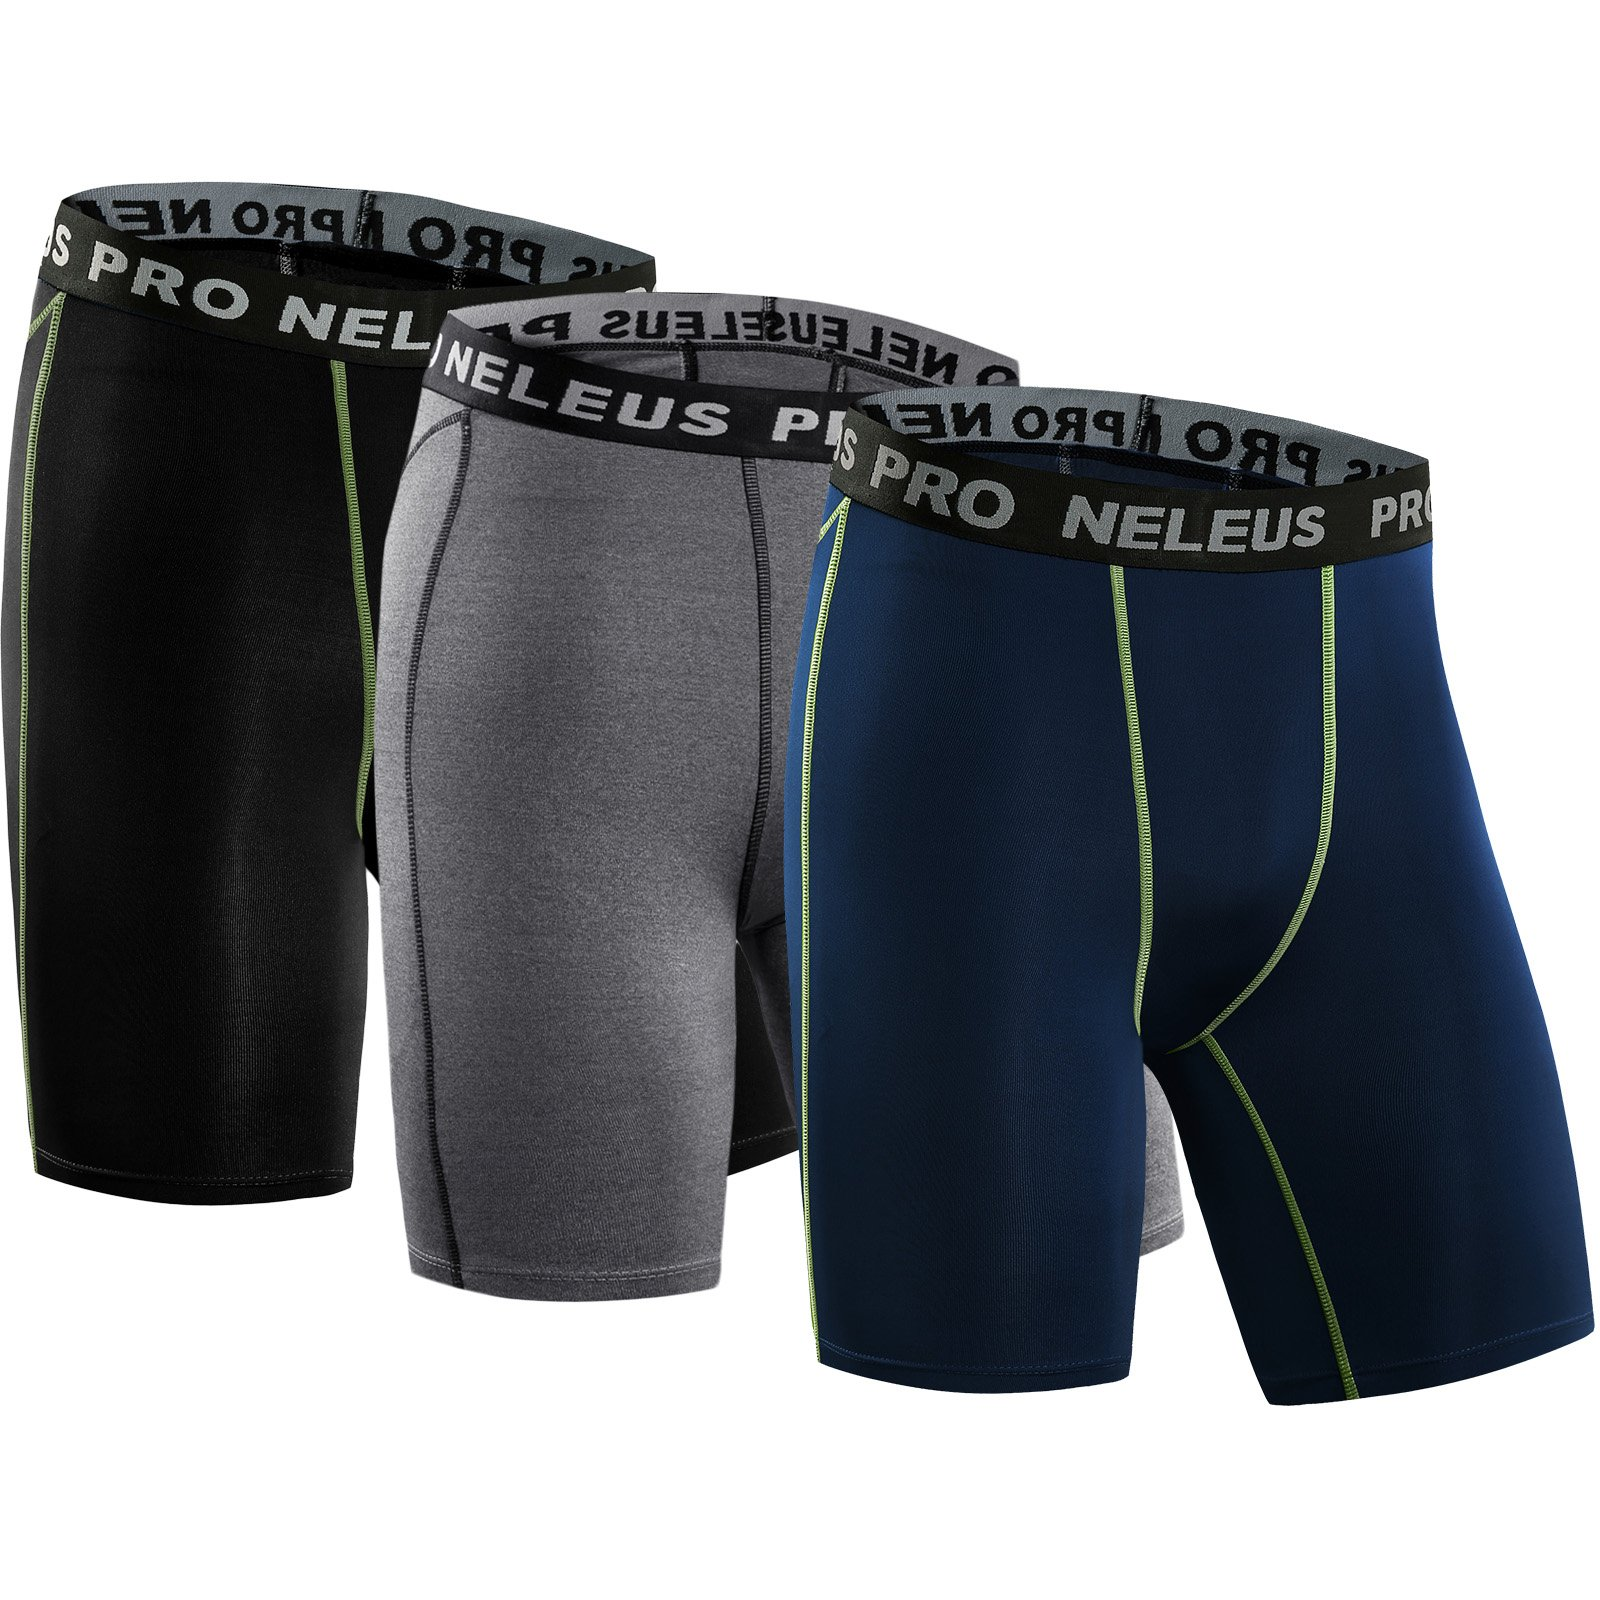 Neleus Men's 3 Pack Compression Short,047,Black,Grey,Navy Blue,US M,EU L by Neleus